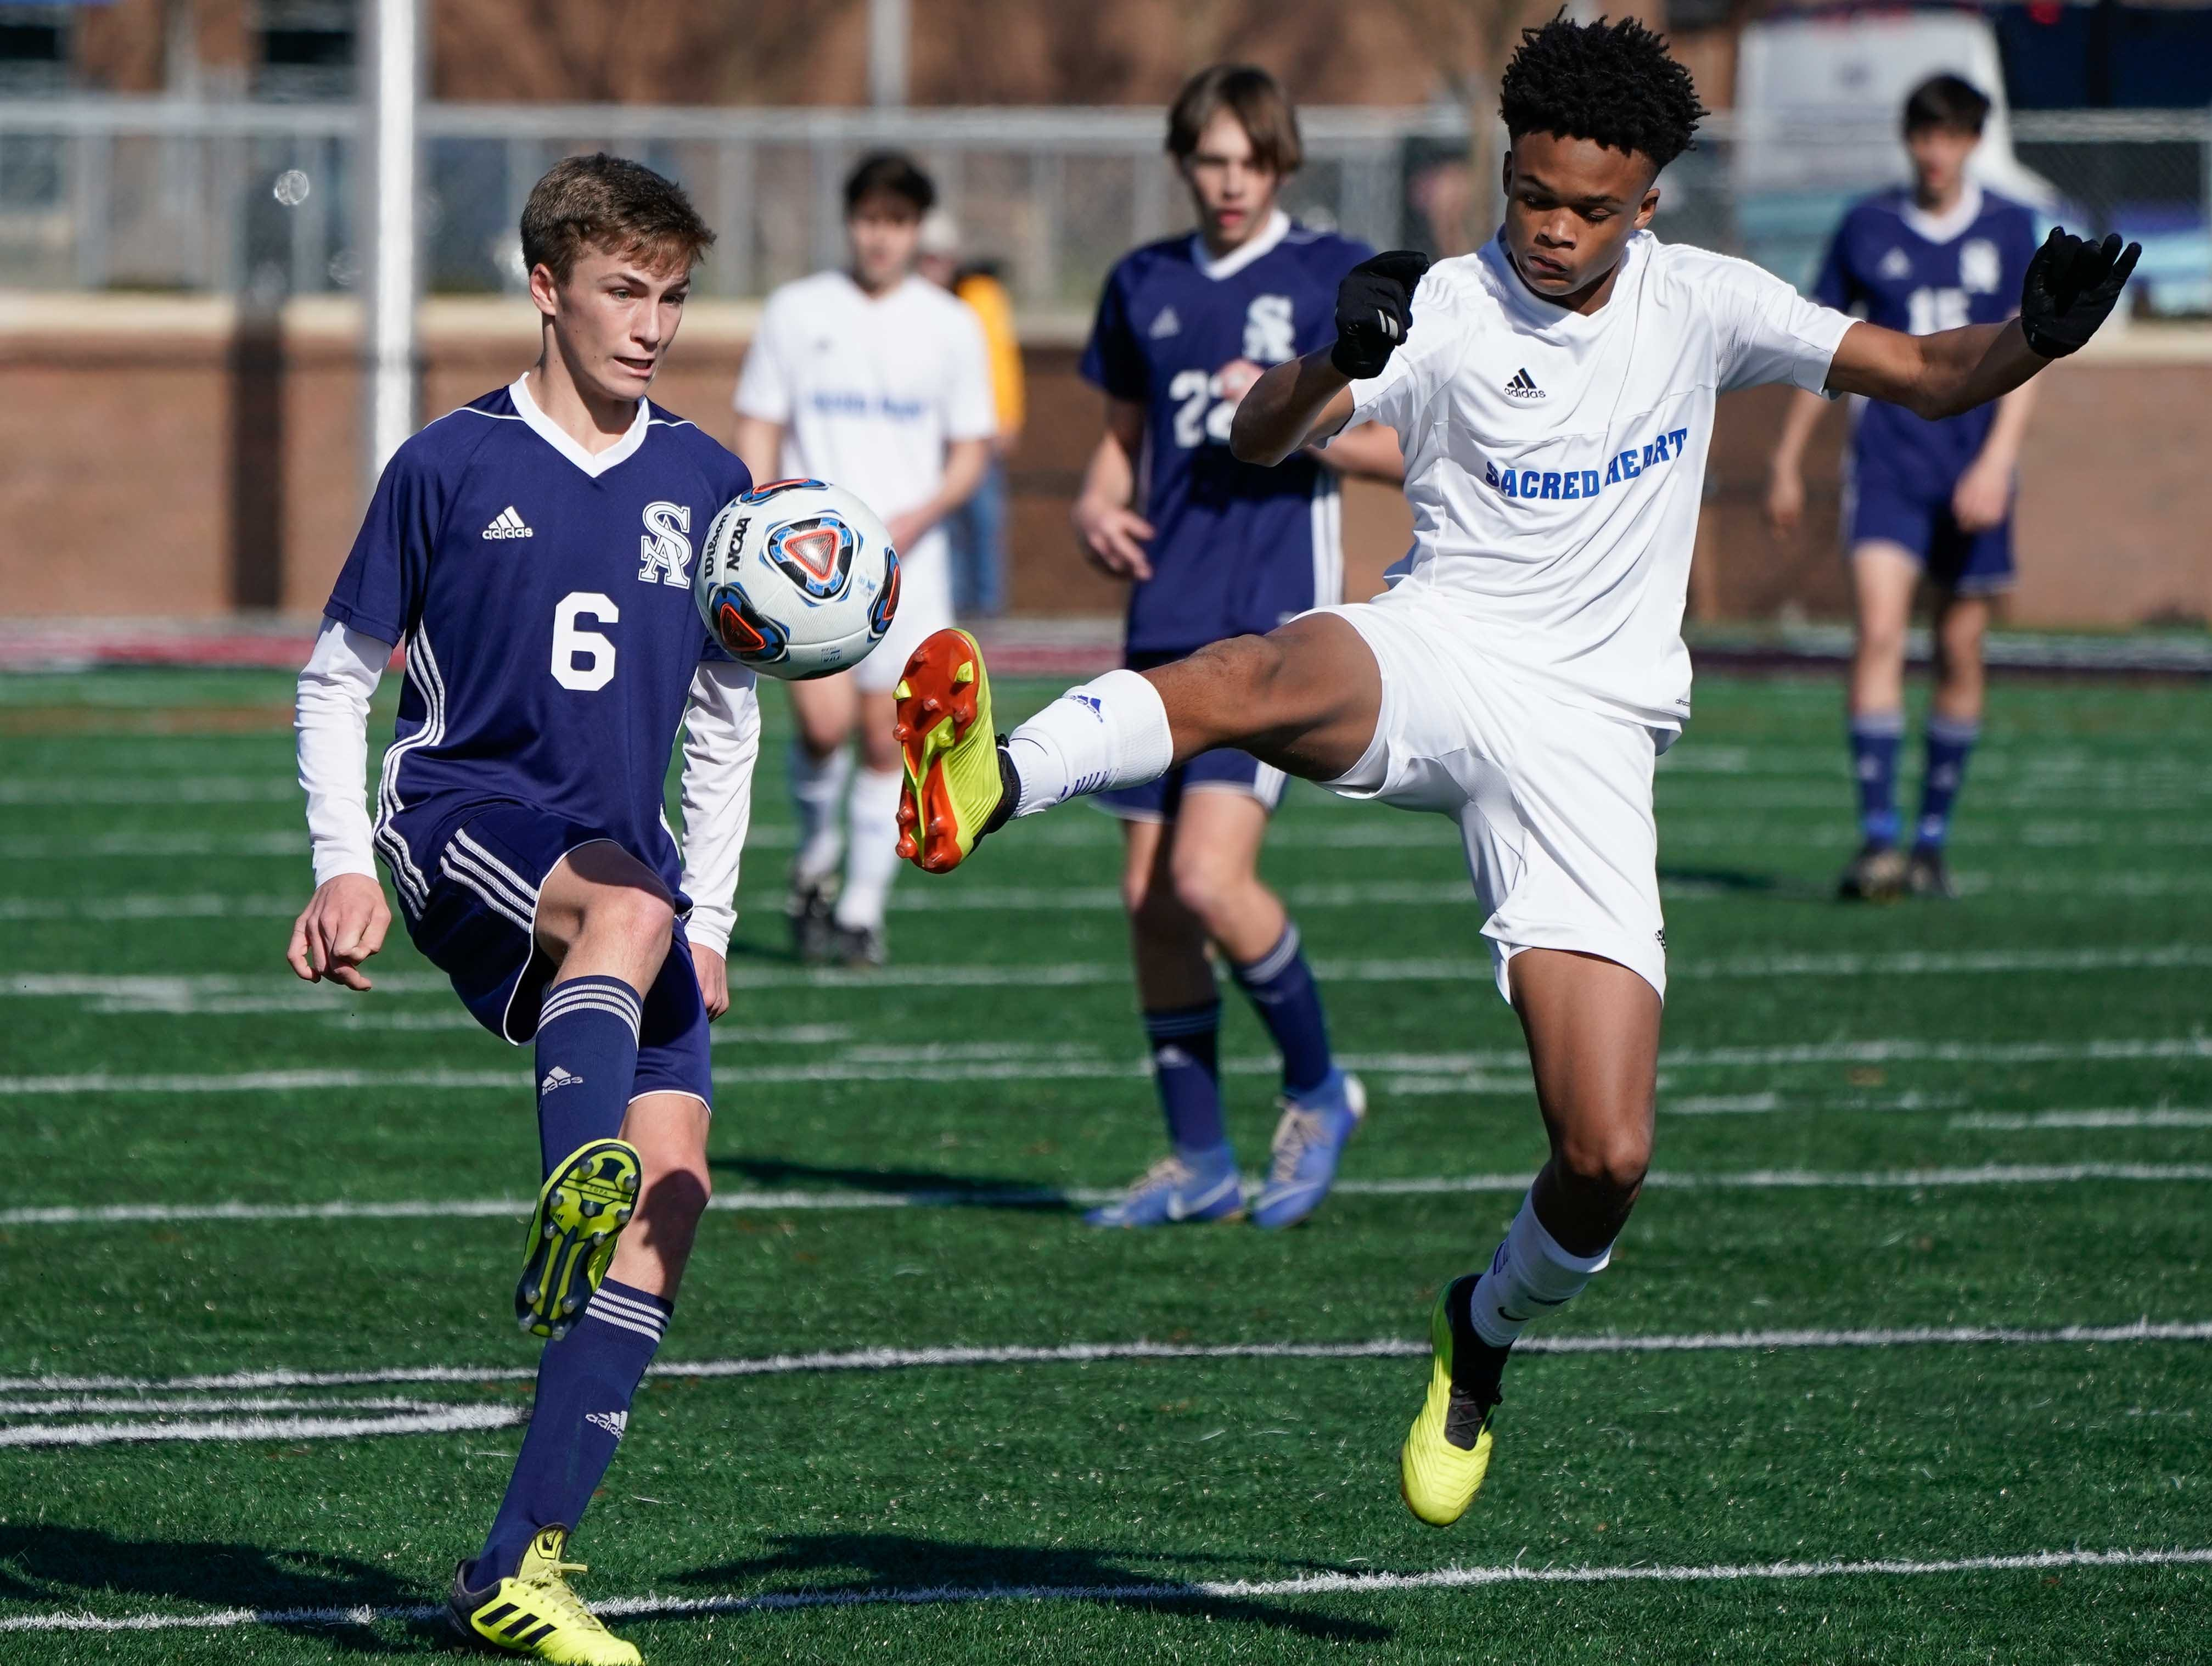 Sacred Heart's Byron Easterling (3) and St Andrew's Hudson Bataille (6) go for a ball during the MHSAA 1A,2A,3A  Boys Soccer Championships held at Brandon High School in Brandon, MS, Saturday February 9, 2019.(Bob Smith-For The Clarion Ledger)